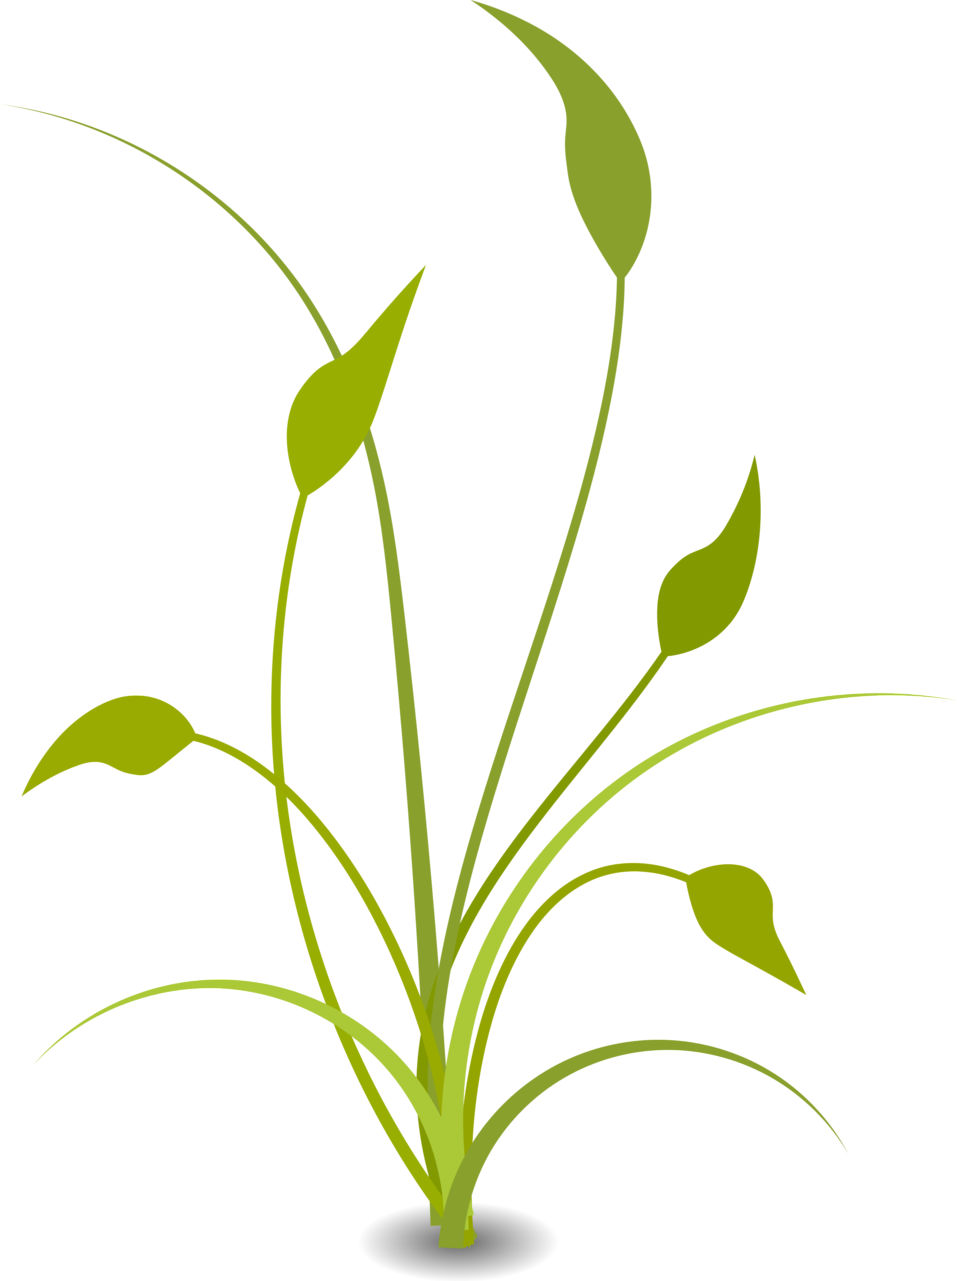 Green plant clipart - Clipground